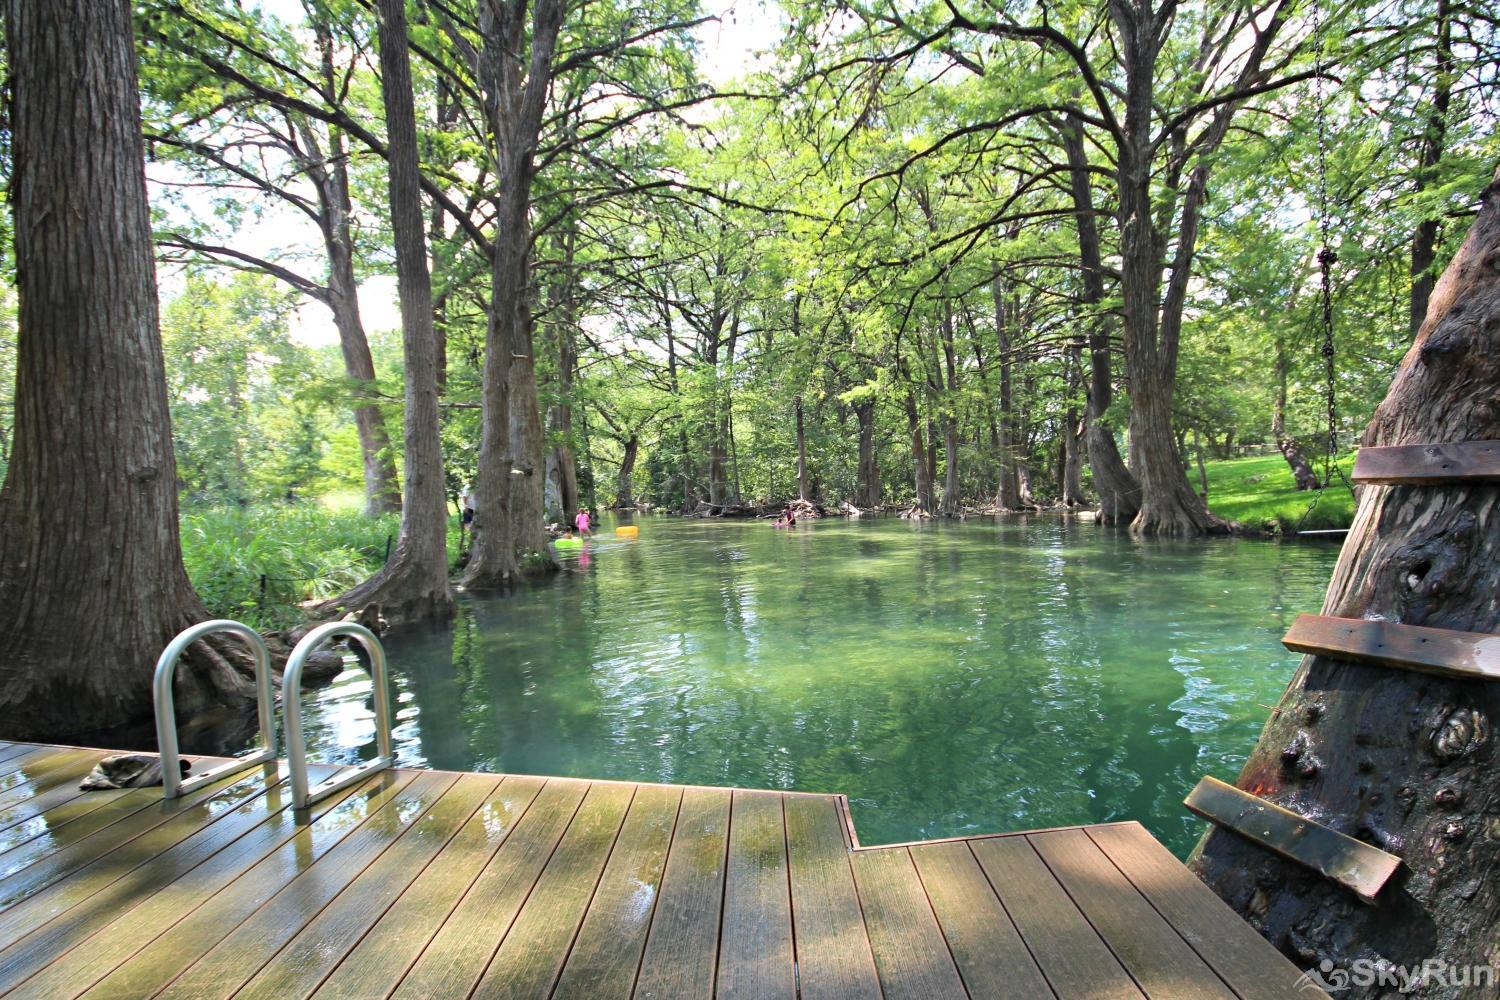 LITTLE ROCK 'N' WOOD Fun Swimming Areas at Blue Hole Park in Wimberley